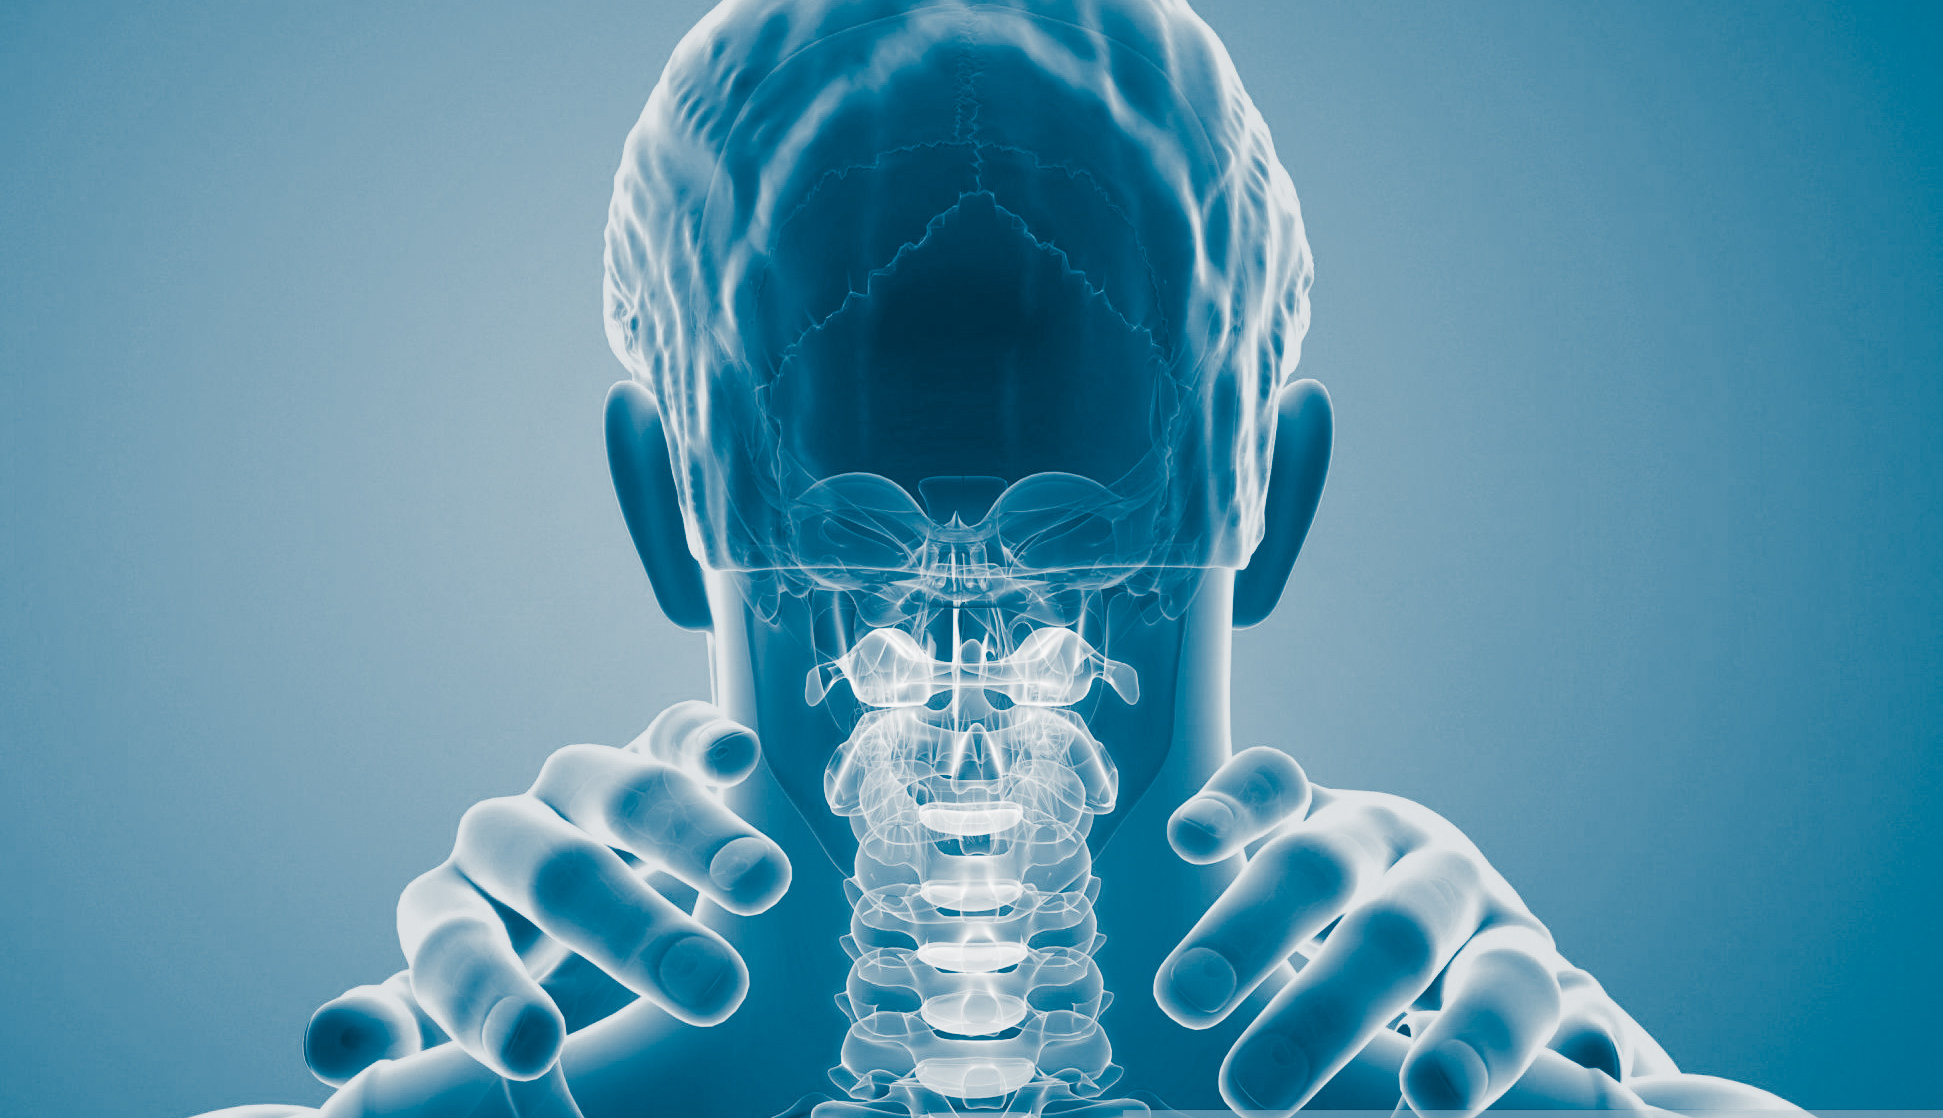 Man with neck pain, computer illustration.